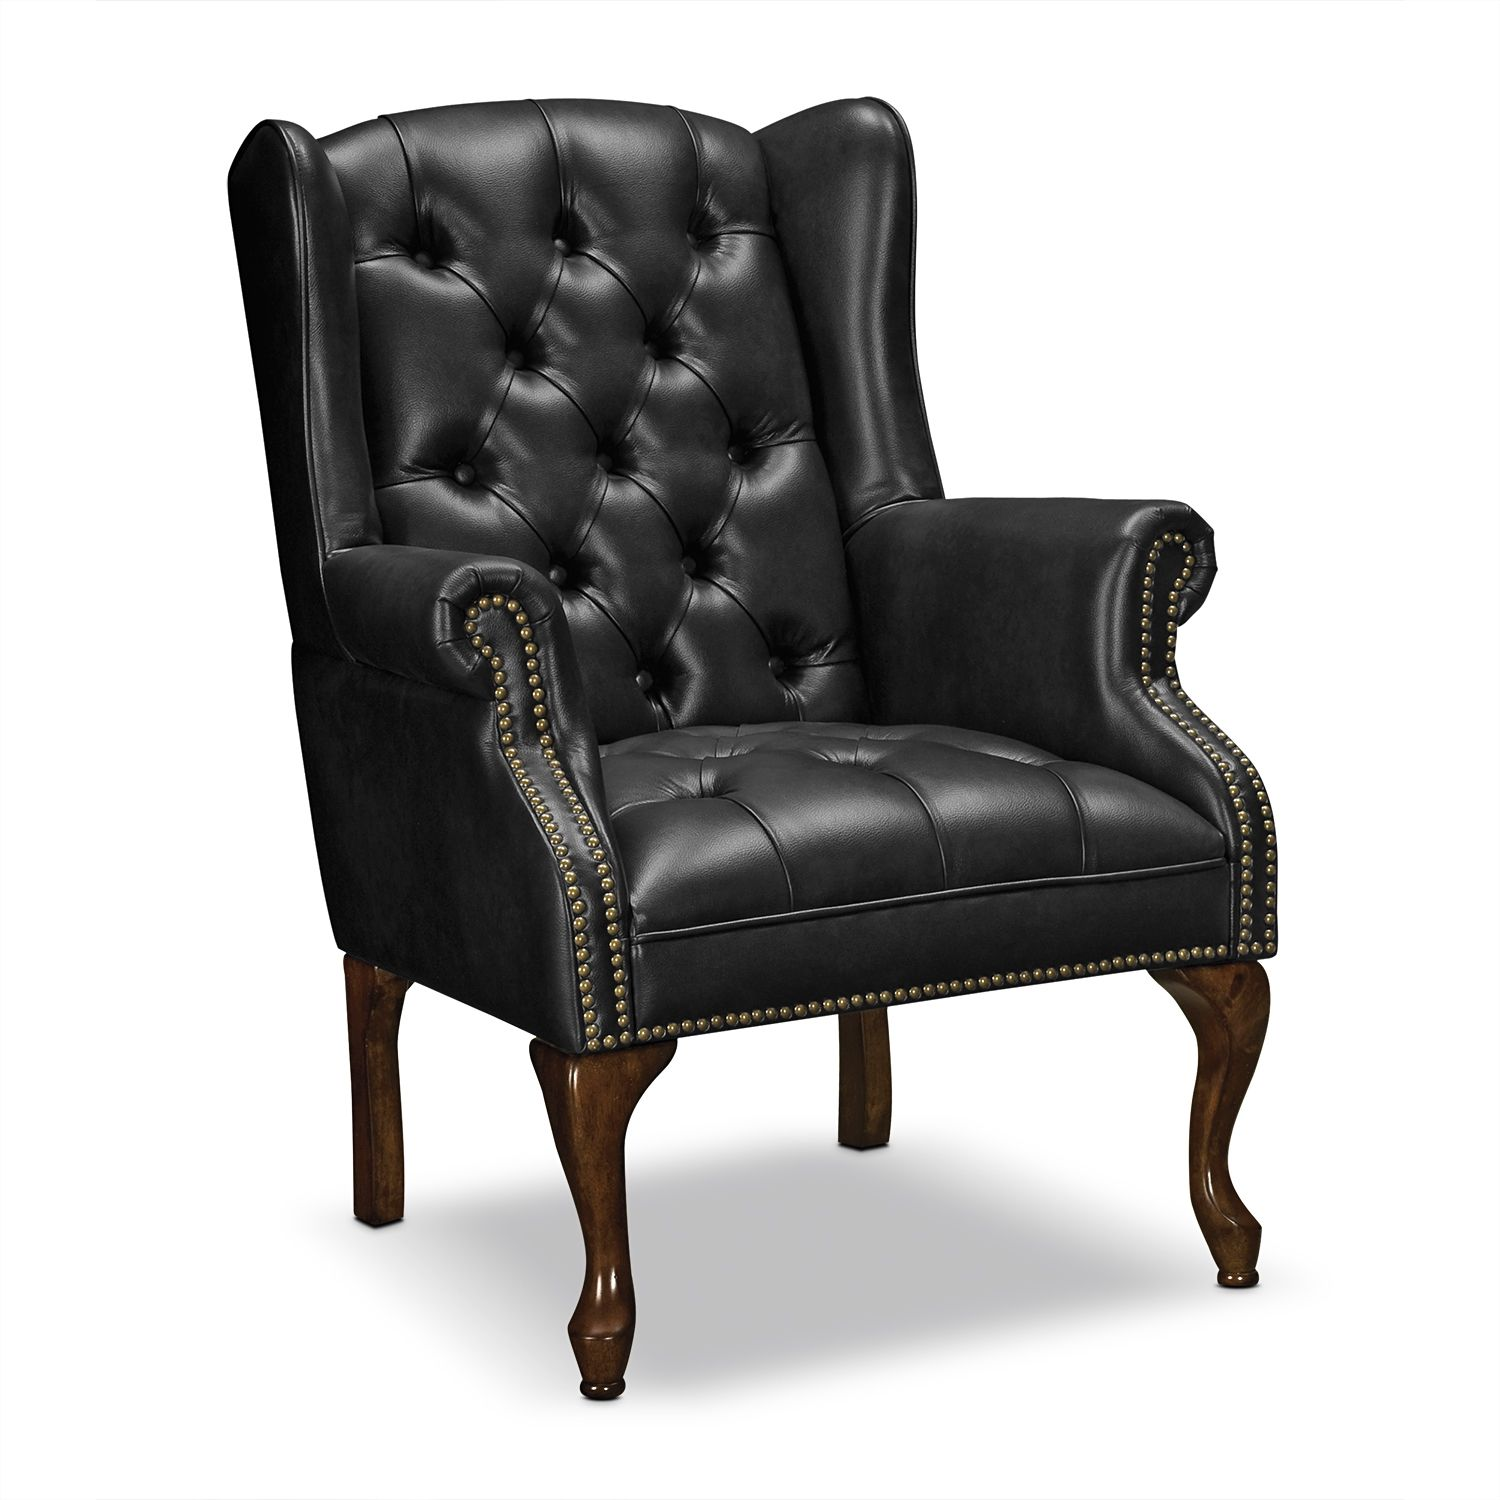 Classic Accent Chair Value City Furniture Types of